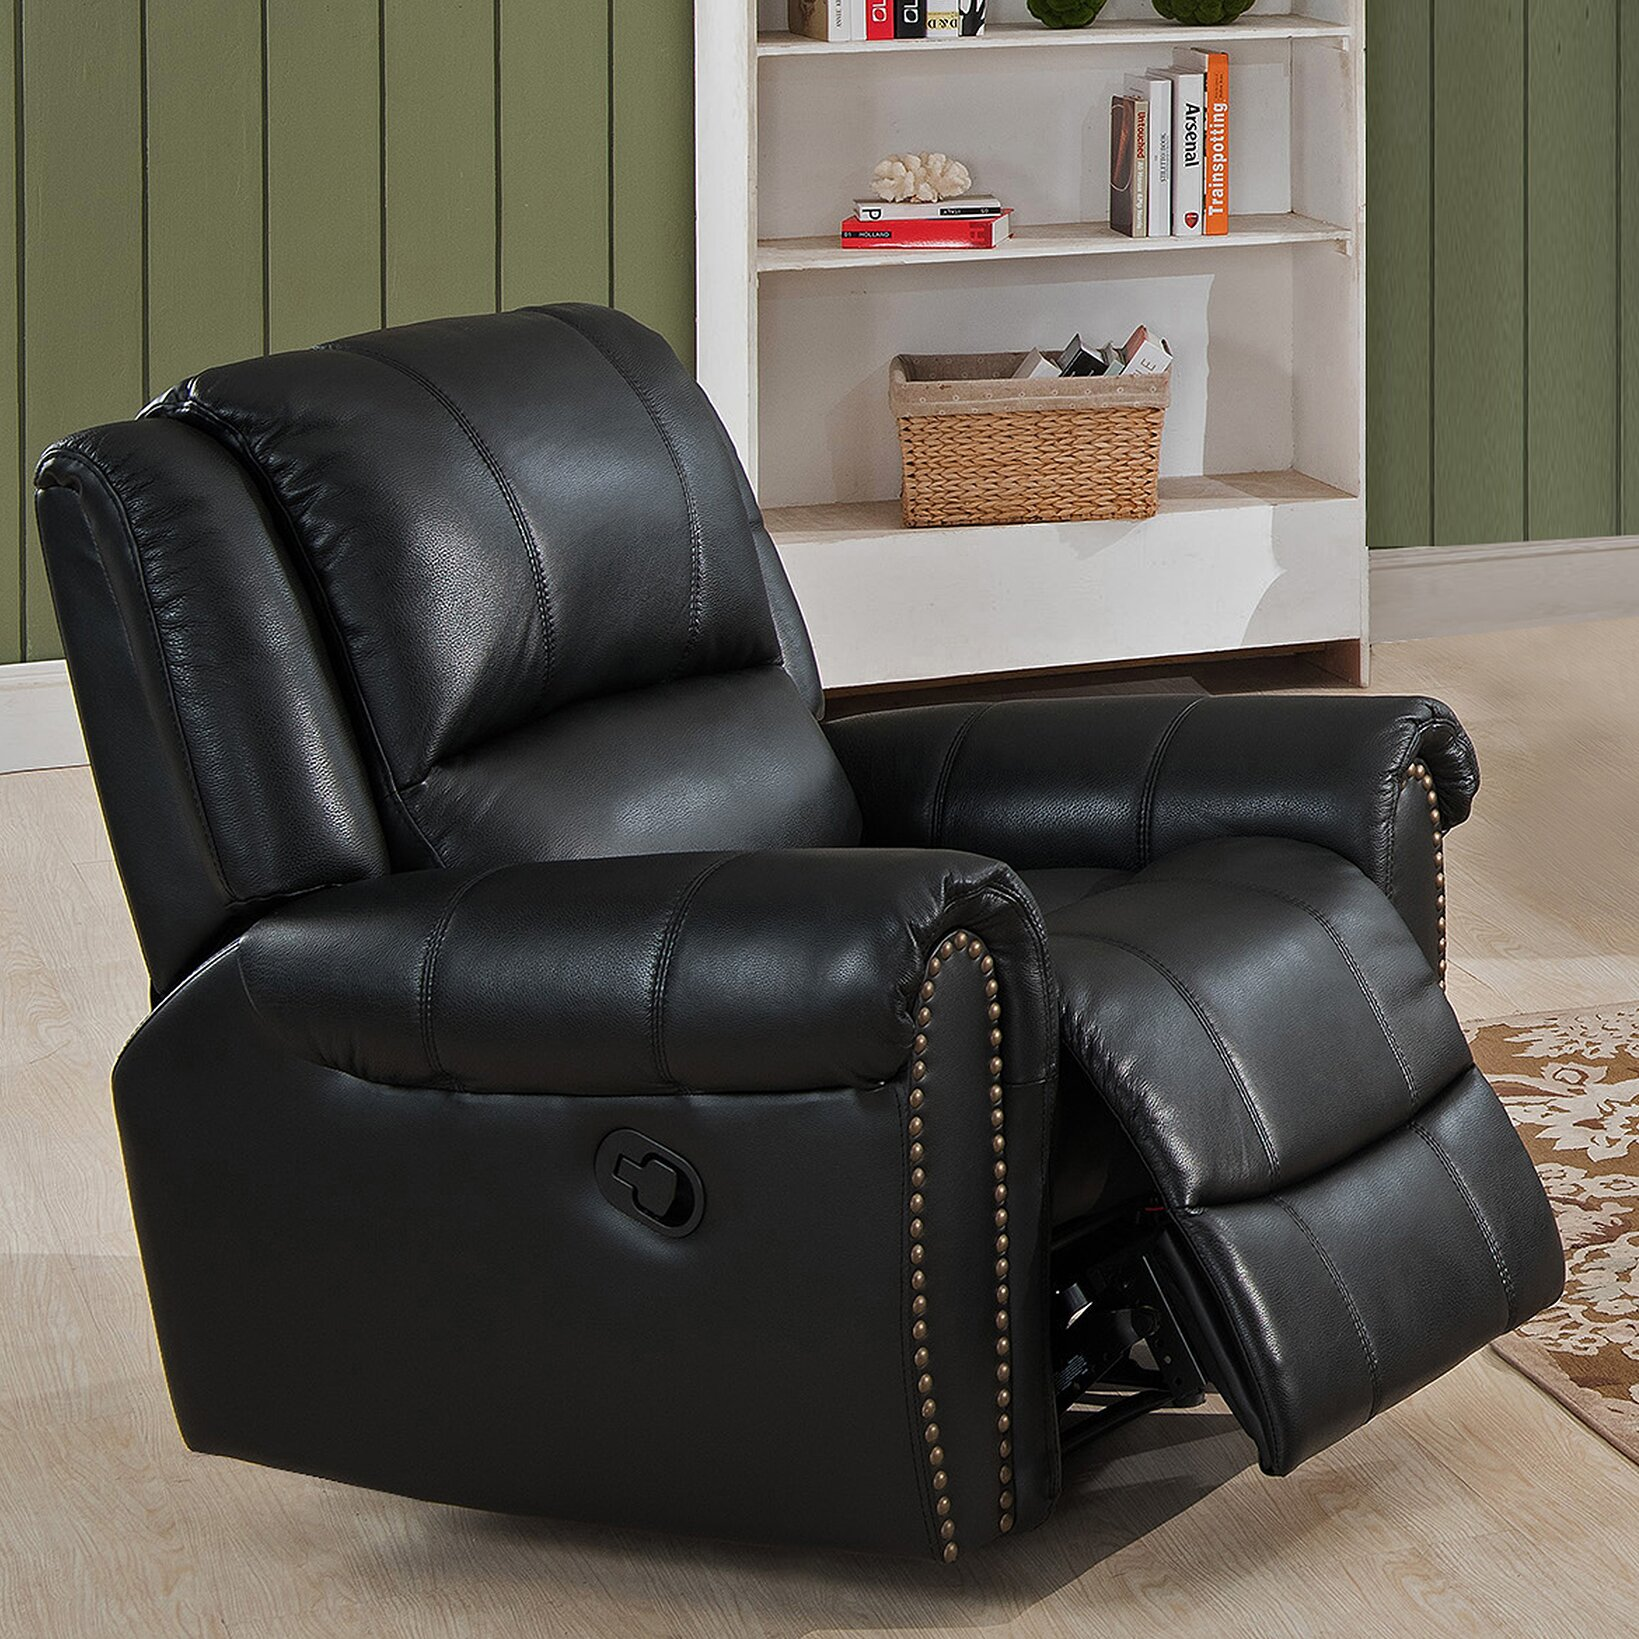 houston 3 piece leather recliner living room set wayfair